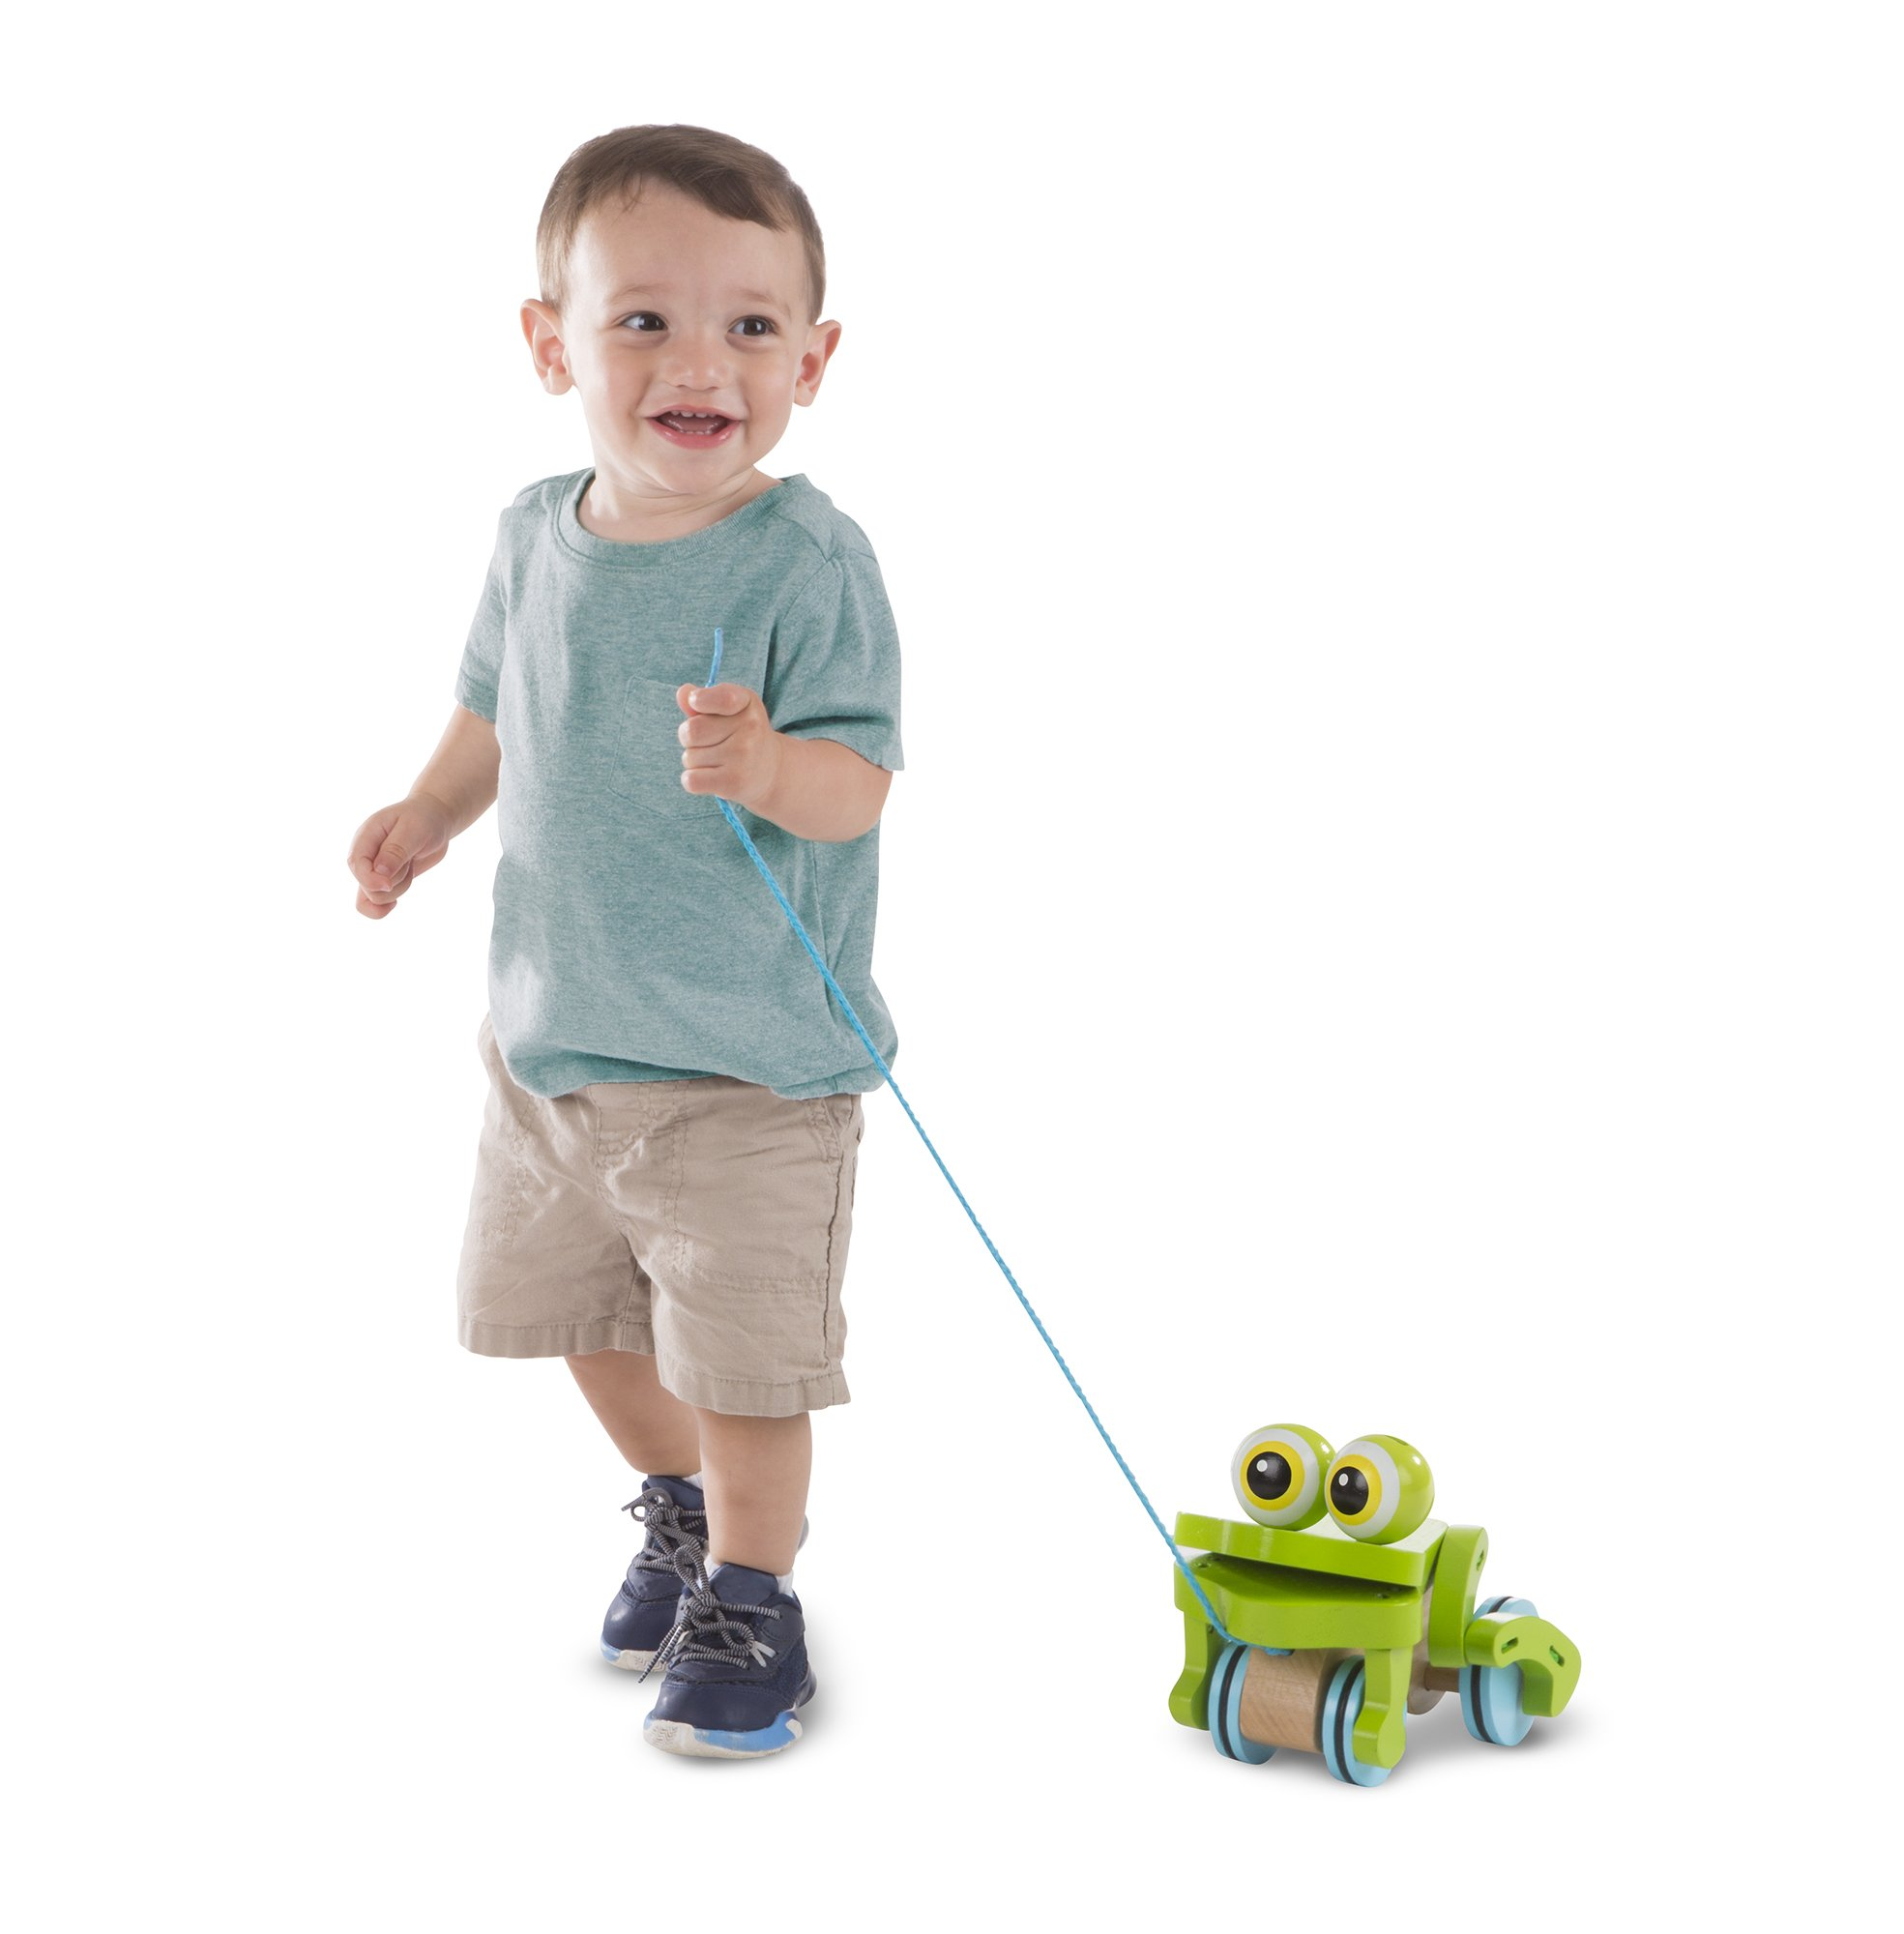 Melissa & Doug First Play Frolicking Frog Wooden Pull Toy by Melissa & Doug (Image #3)